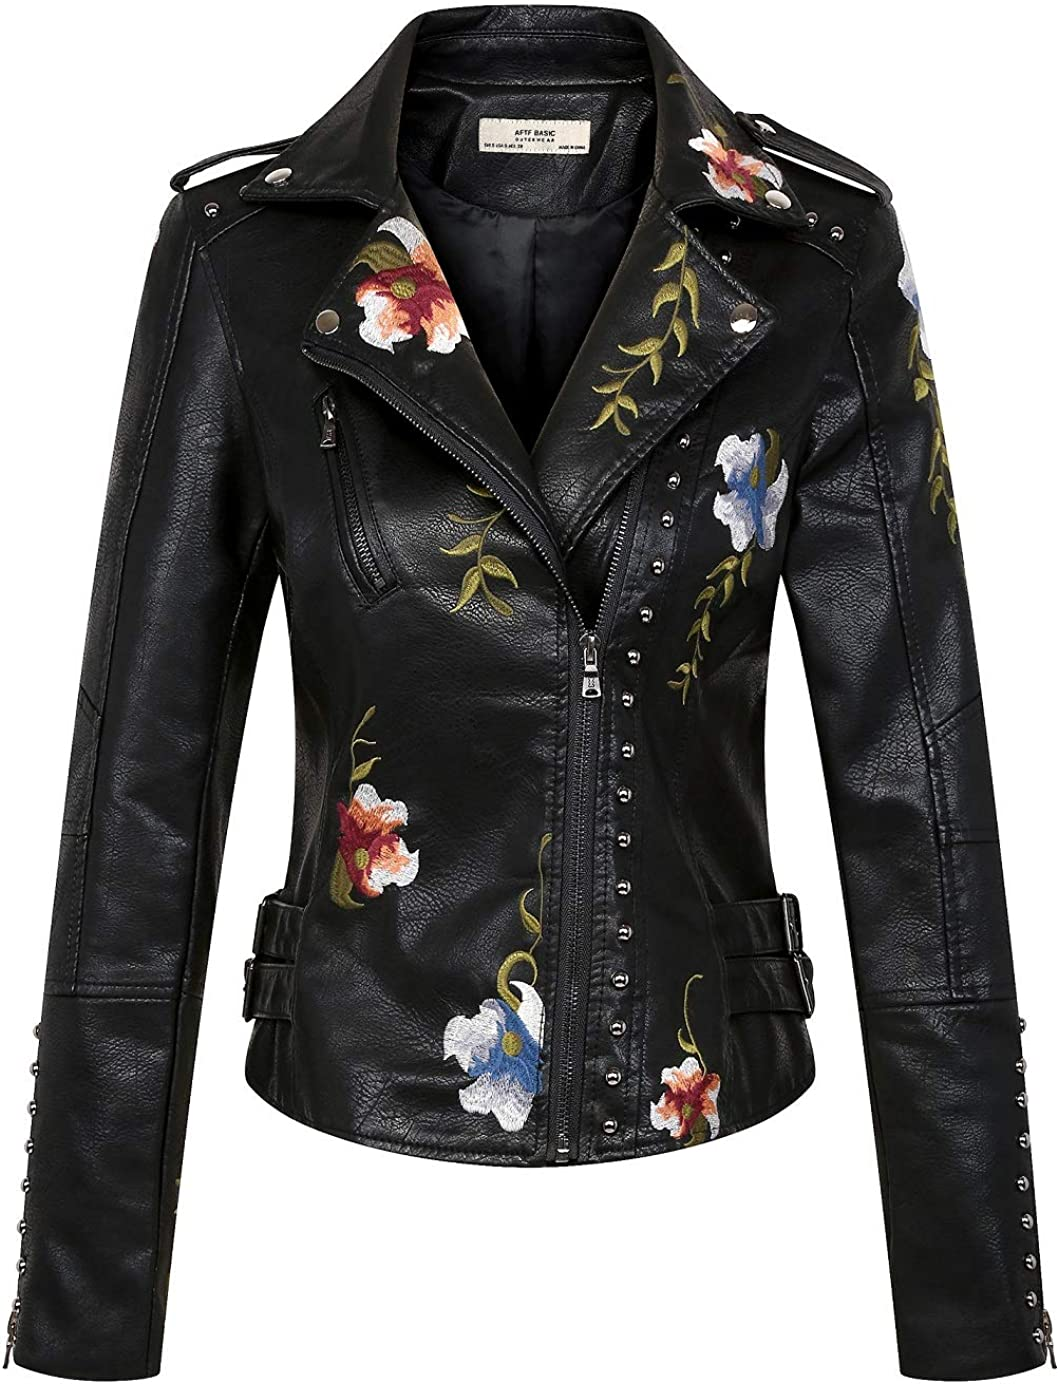 CHARTOU Women's Notched Collar Slim Sales for sale Ri Fit PU Embroidery Leather Manufacturer OFFicial shop